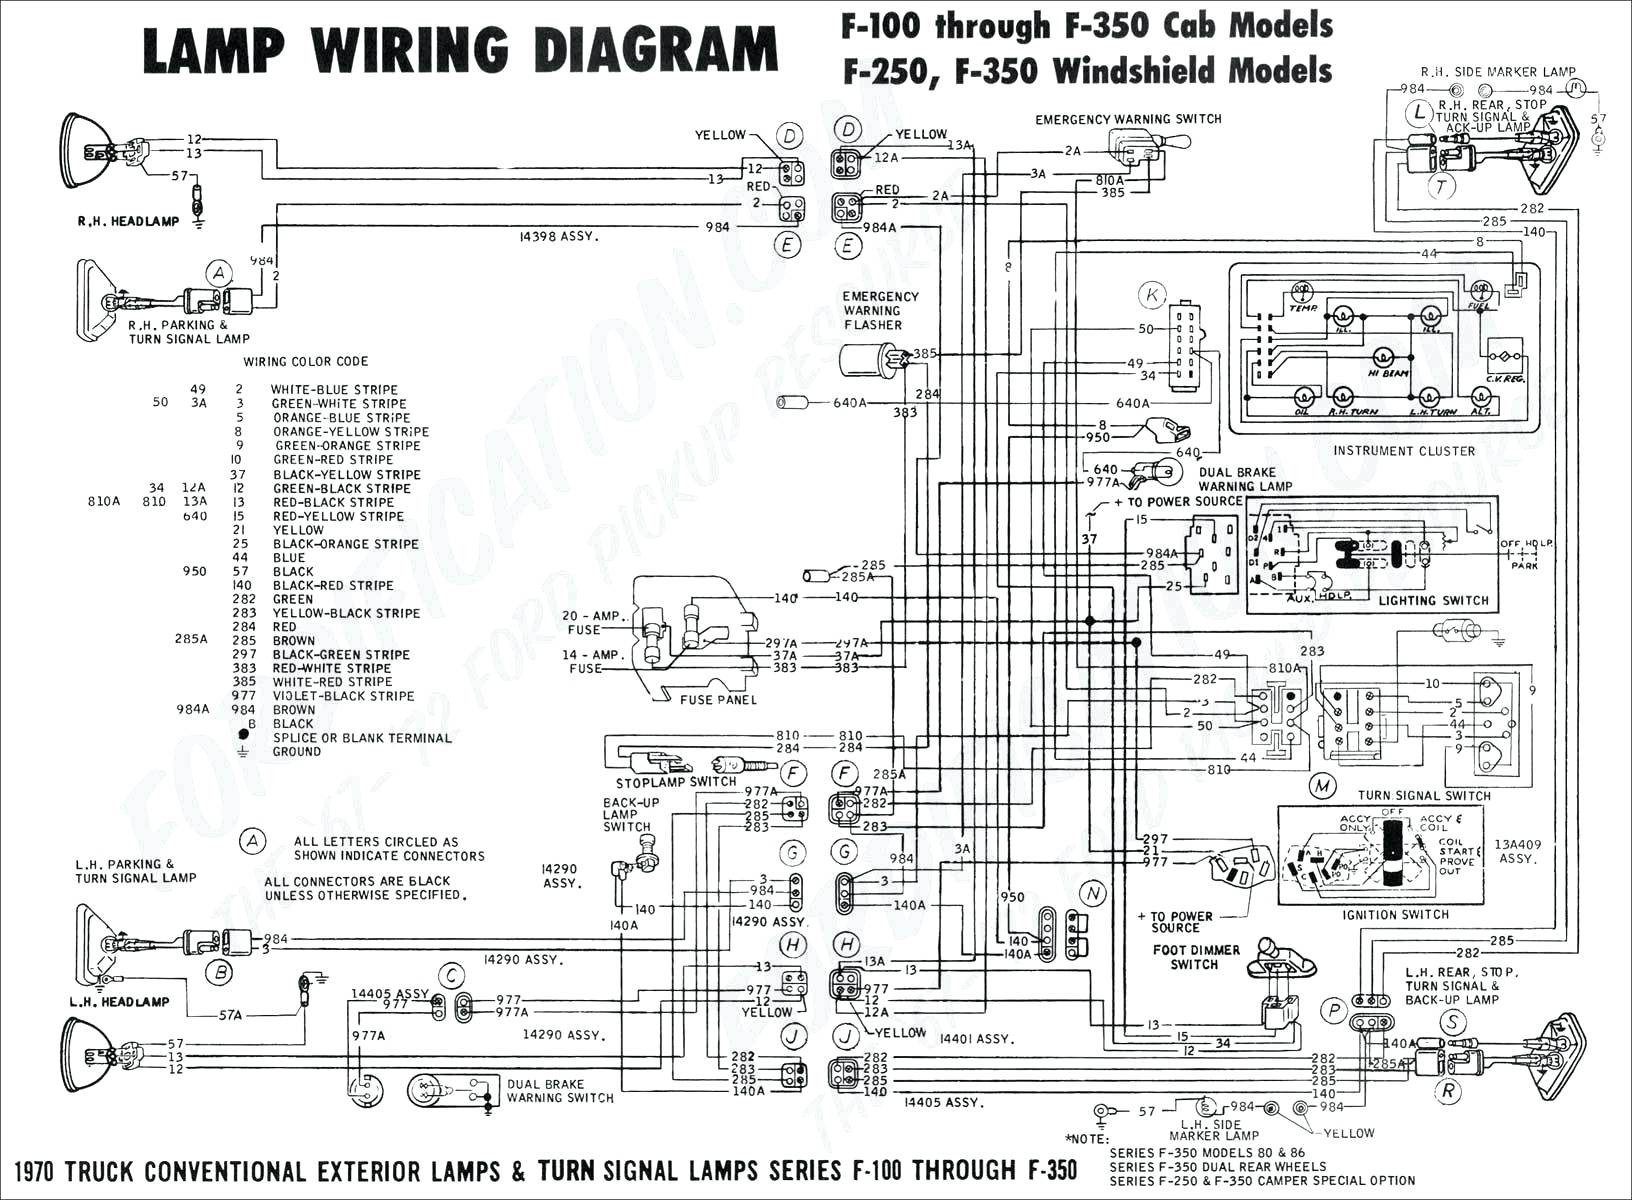 2000 Ford Ranger Headlight Wiring Diagram  2000 Ford